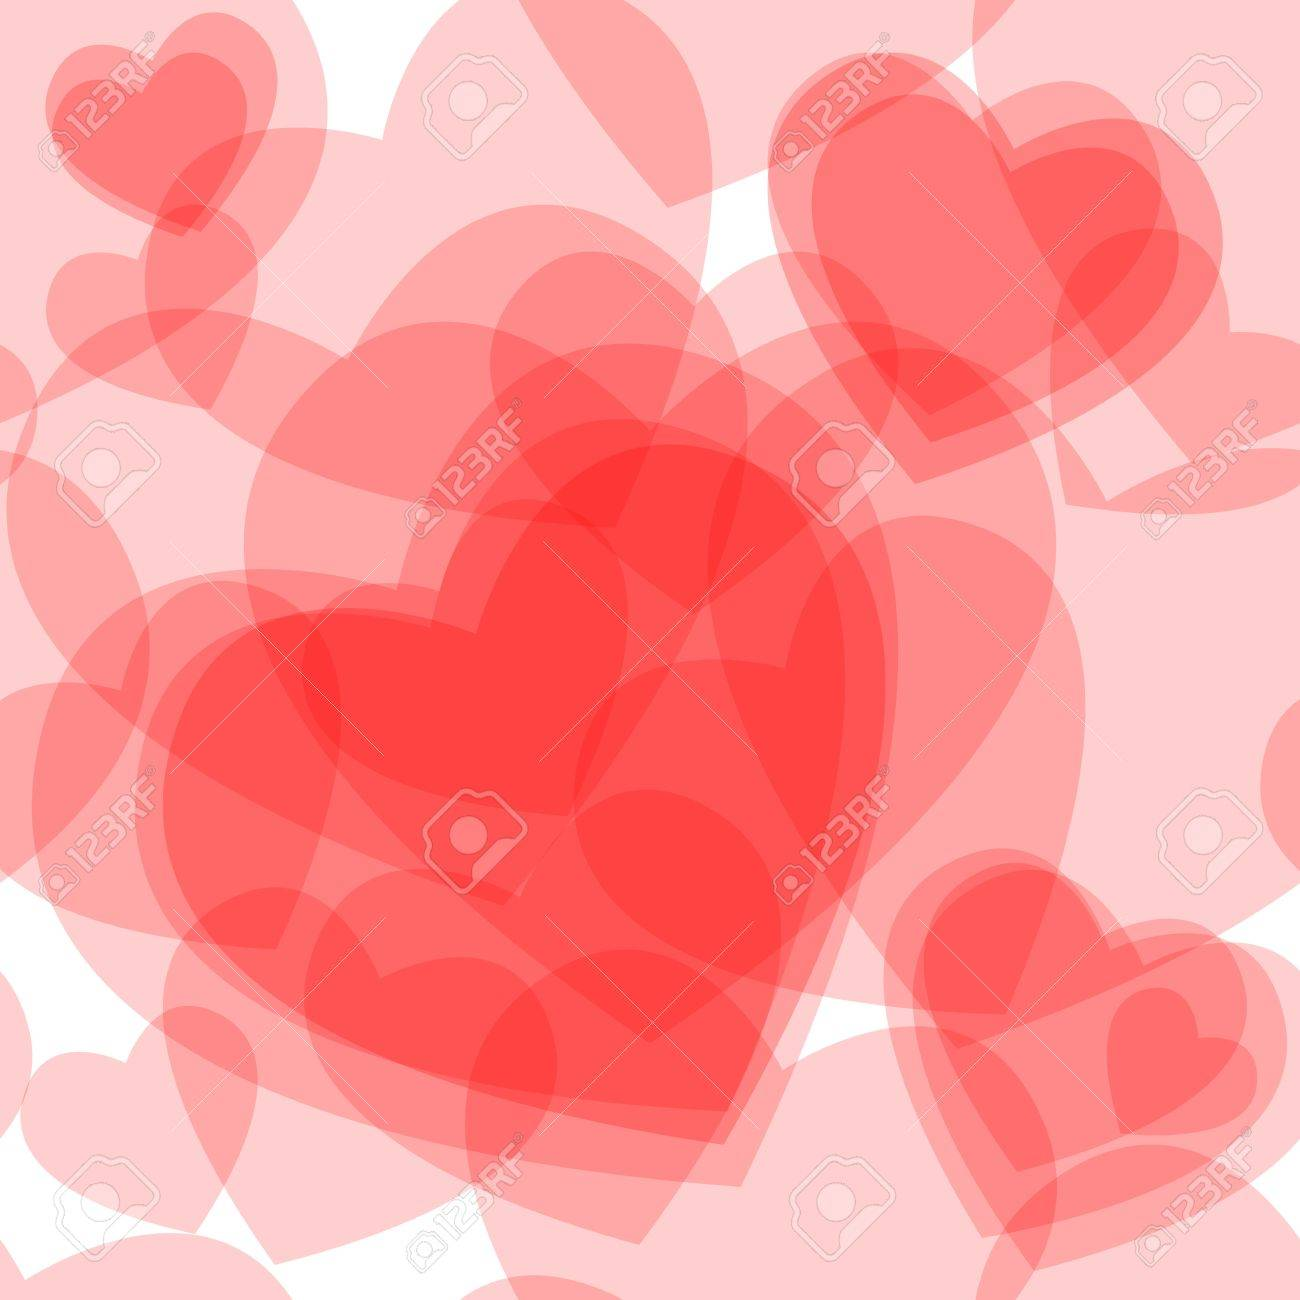 Seamless pattern made of cute transparent heart symbols overlaid seamless pattern made of cute transparent heart symbols overlaid beautiful love or valentines day card biocorpaavc Choice Image